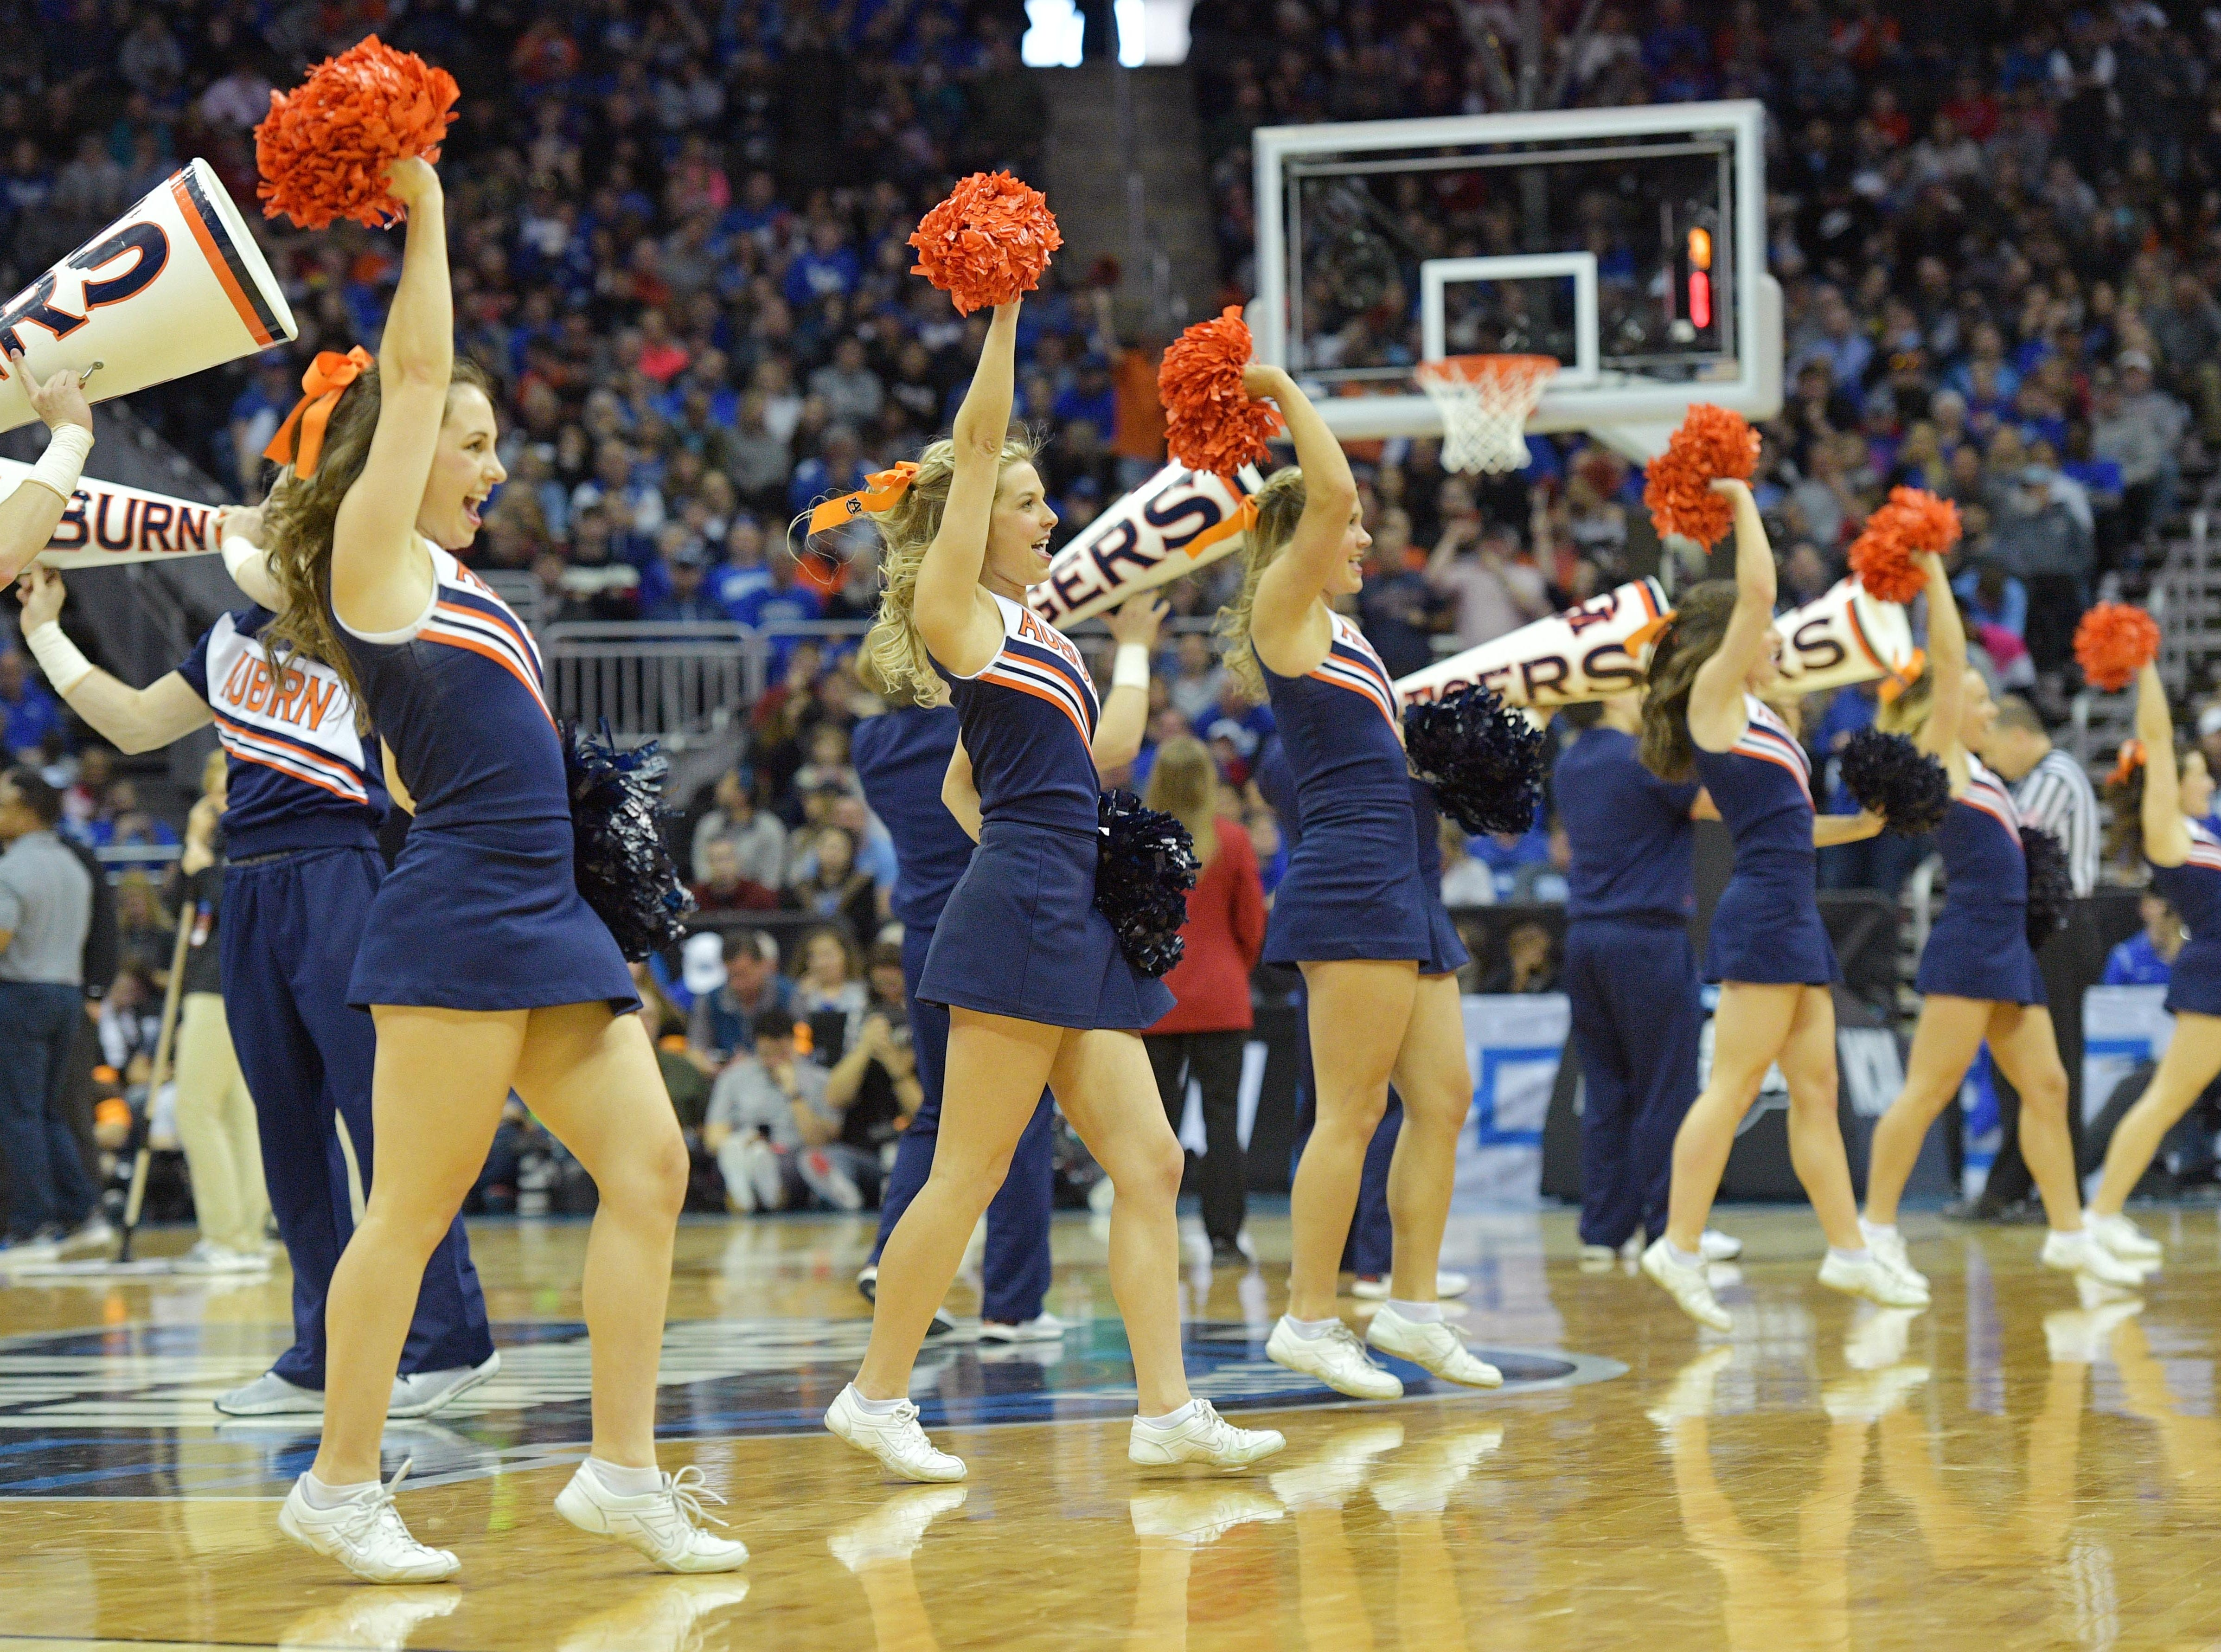 Mar 31, 2019; Kansas City, MO, United States; Auburn Tigers cheerleaders perform against the Kentucky Wildcats during the second half in the championship game of the midwest regional of the 2019 NCAA Tournament at Sprint Center. Mandatory Credit: Denny Medley-USA TODAY Sports